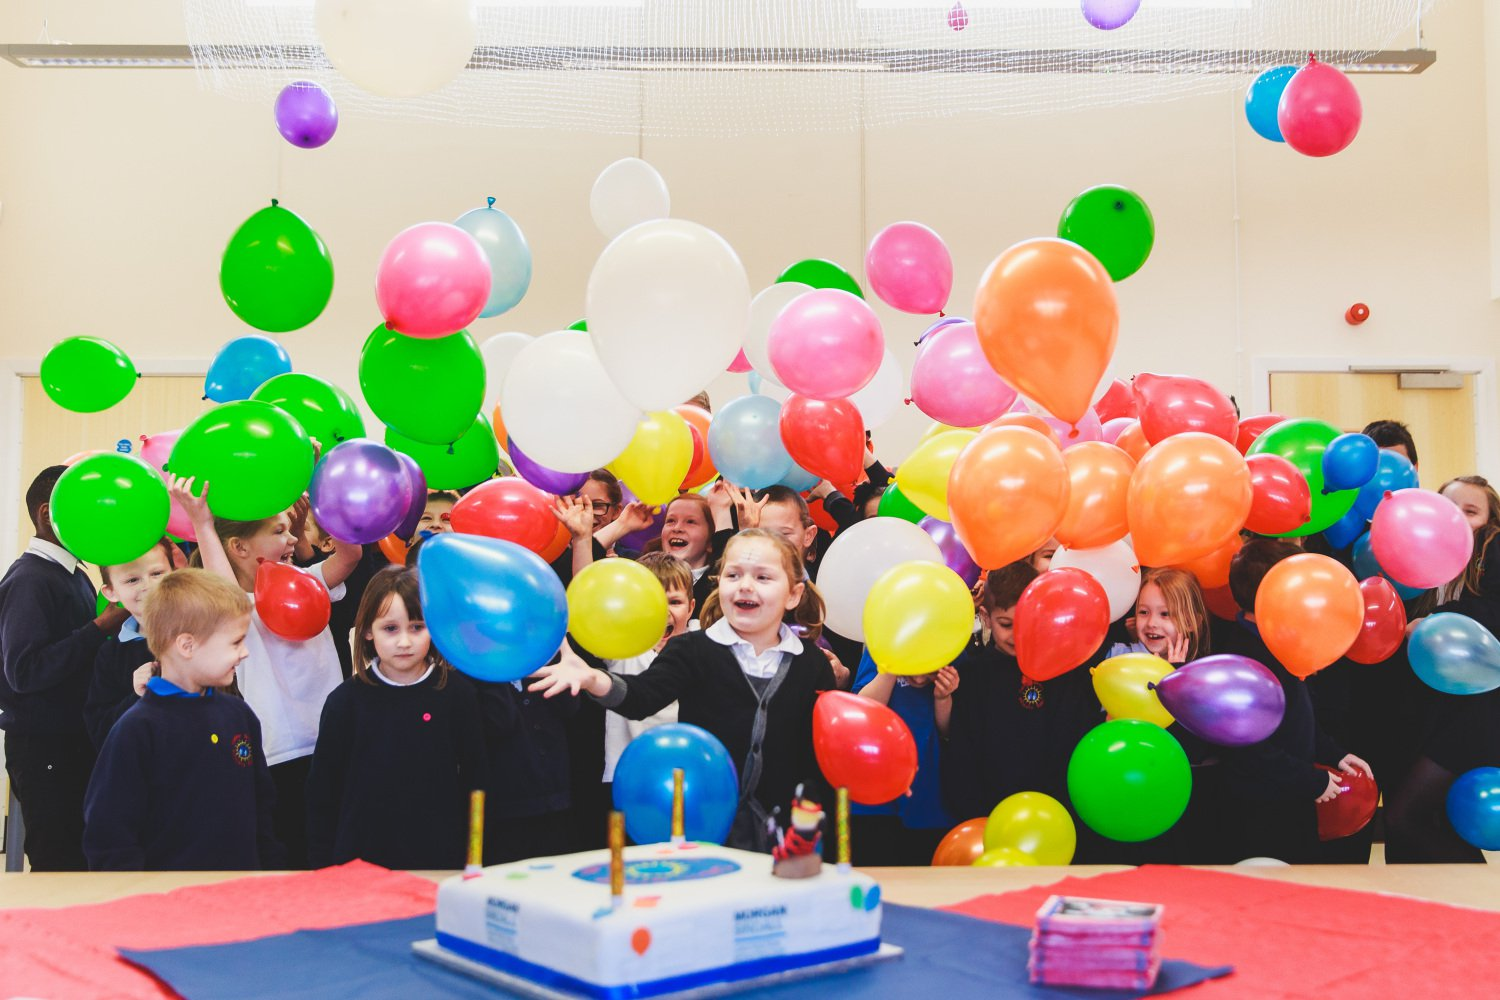 A group of happy school pupils playing with balloons, as part of a balloon drop that was organised for a school handover